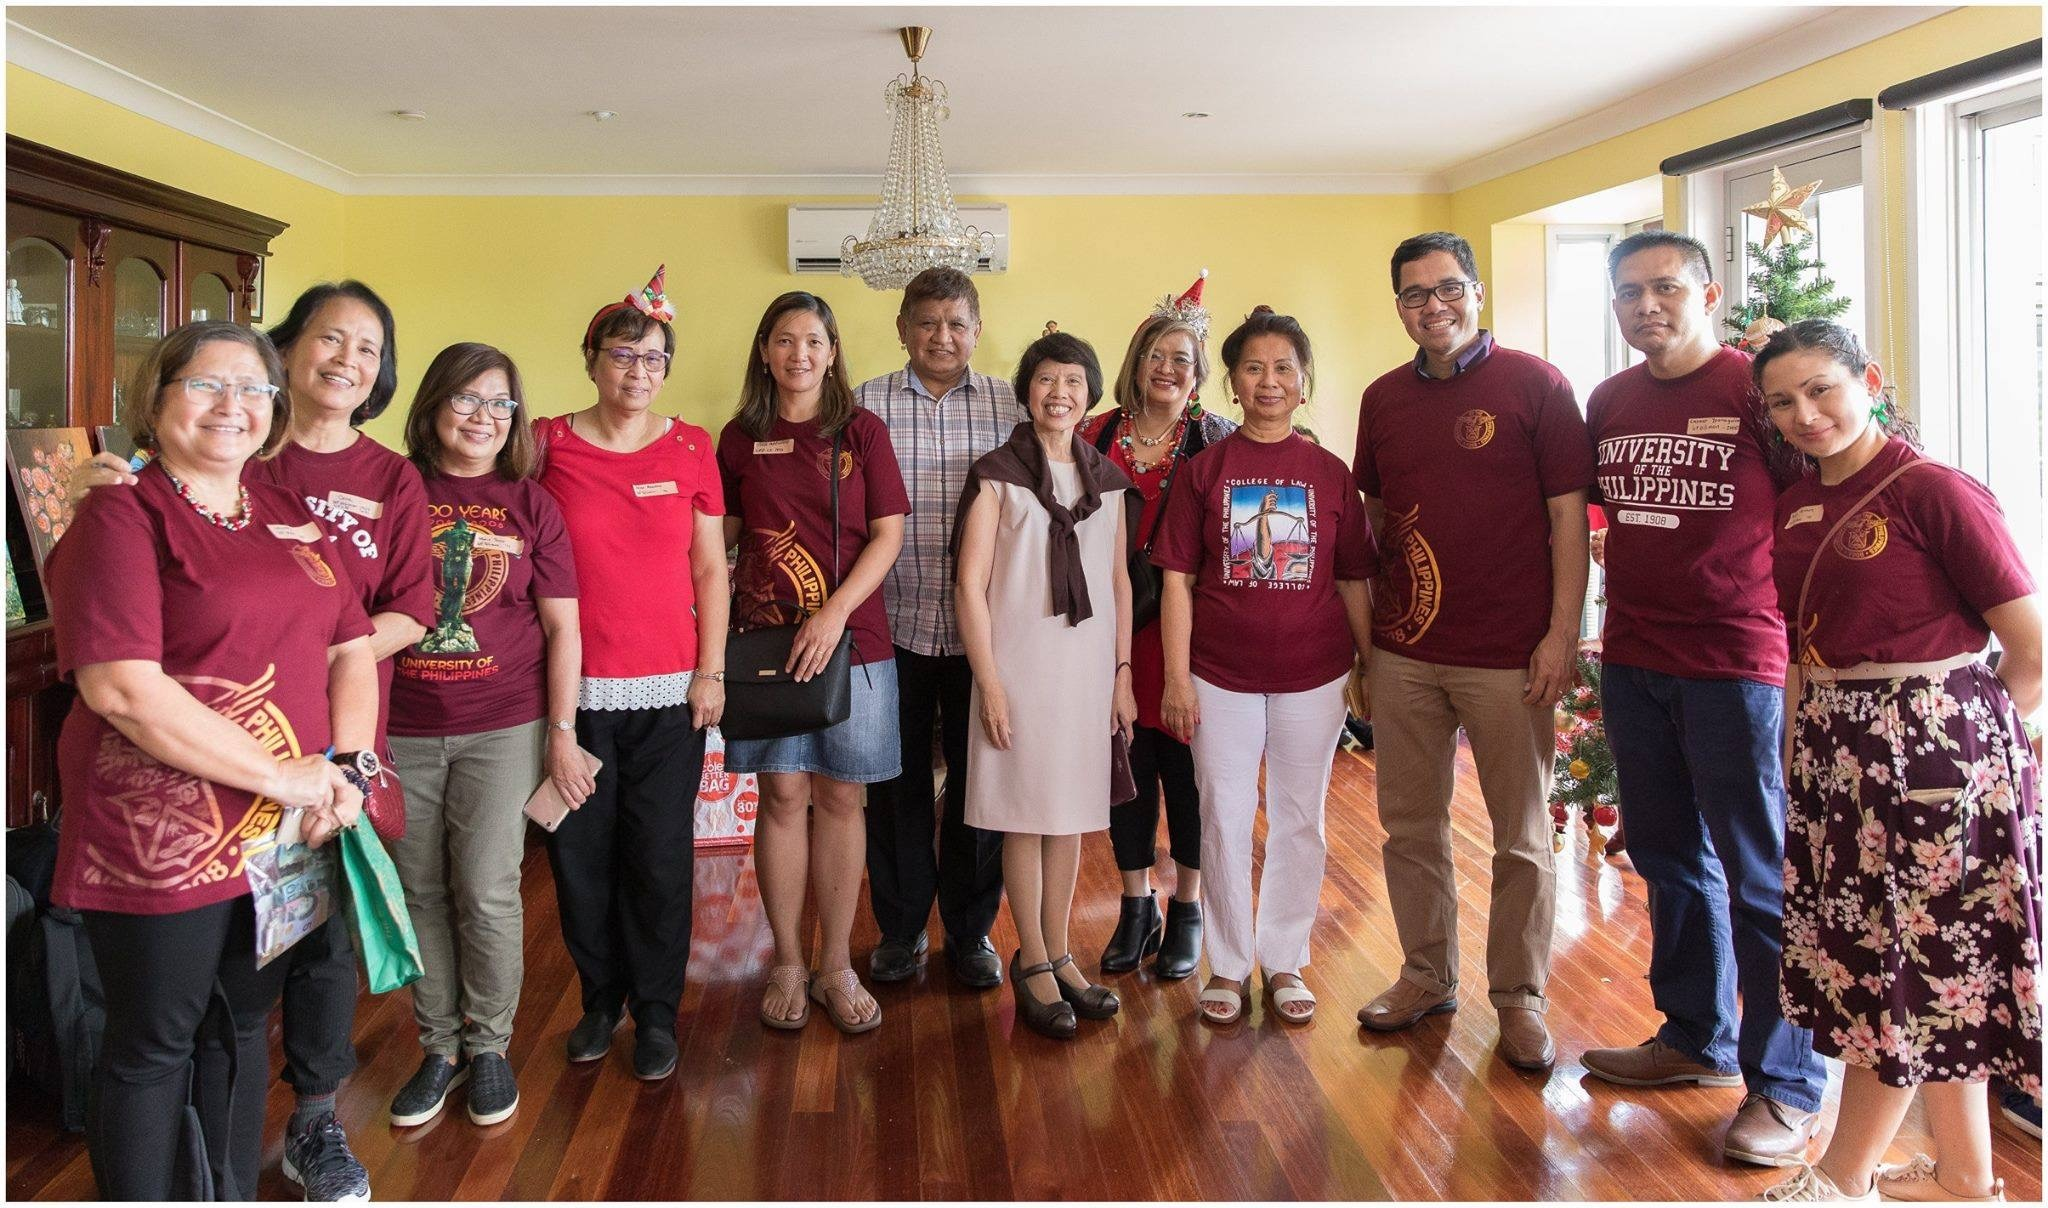 Argel, 4th from left, with members of the UP Alumni Association